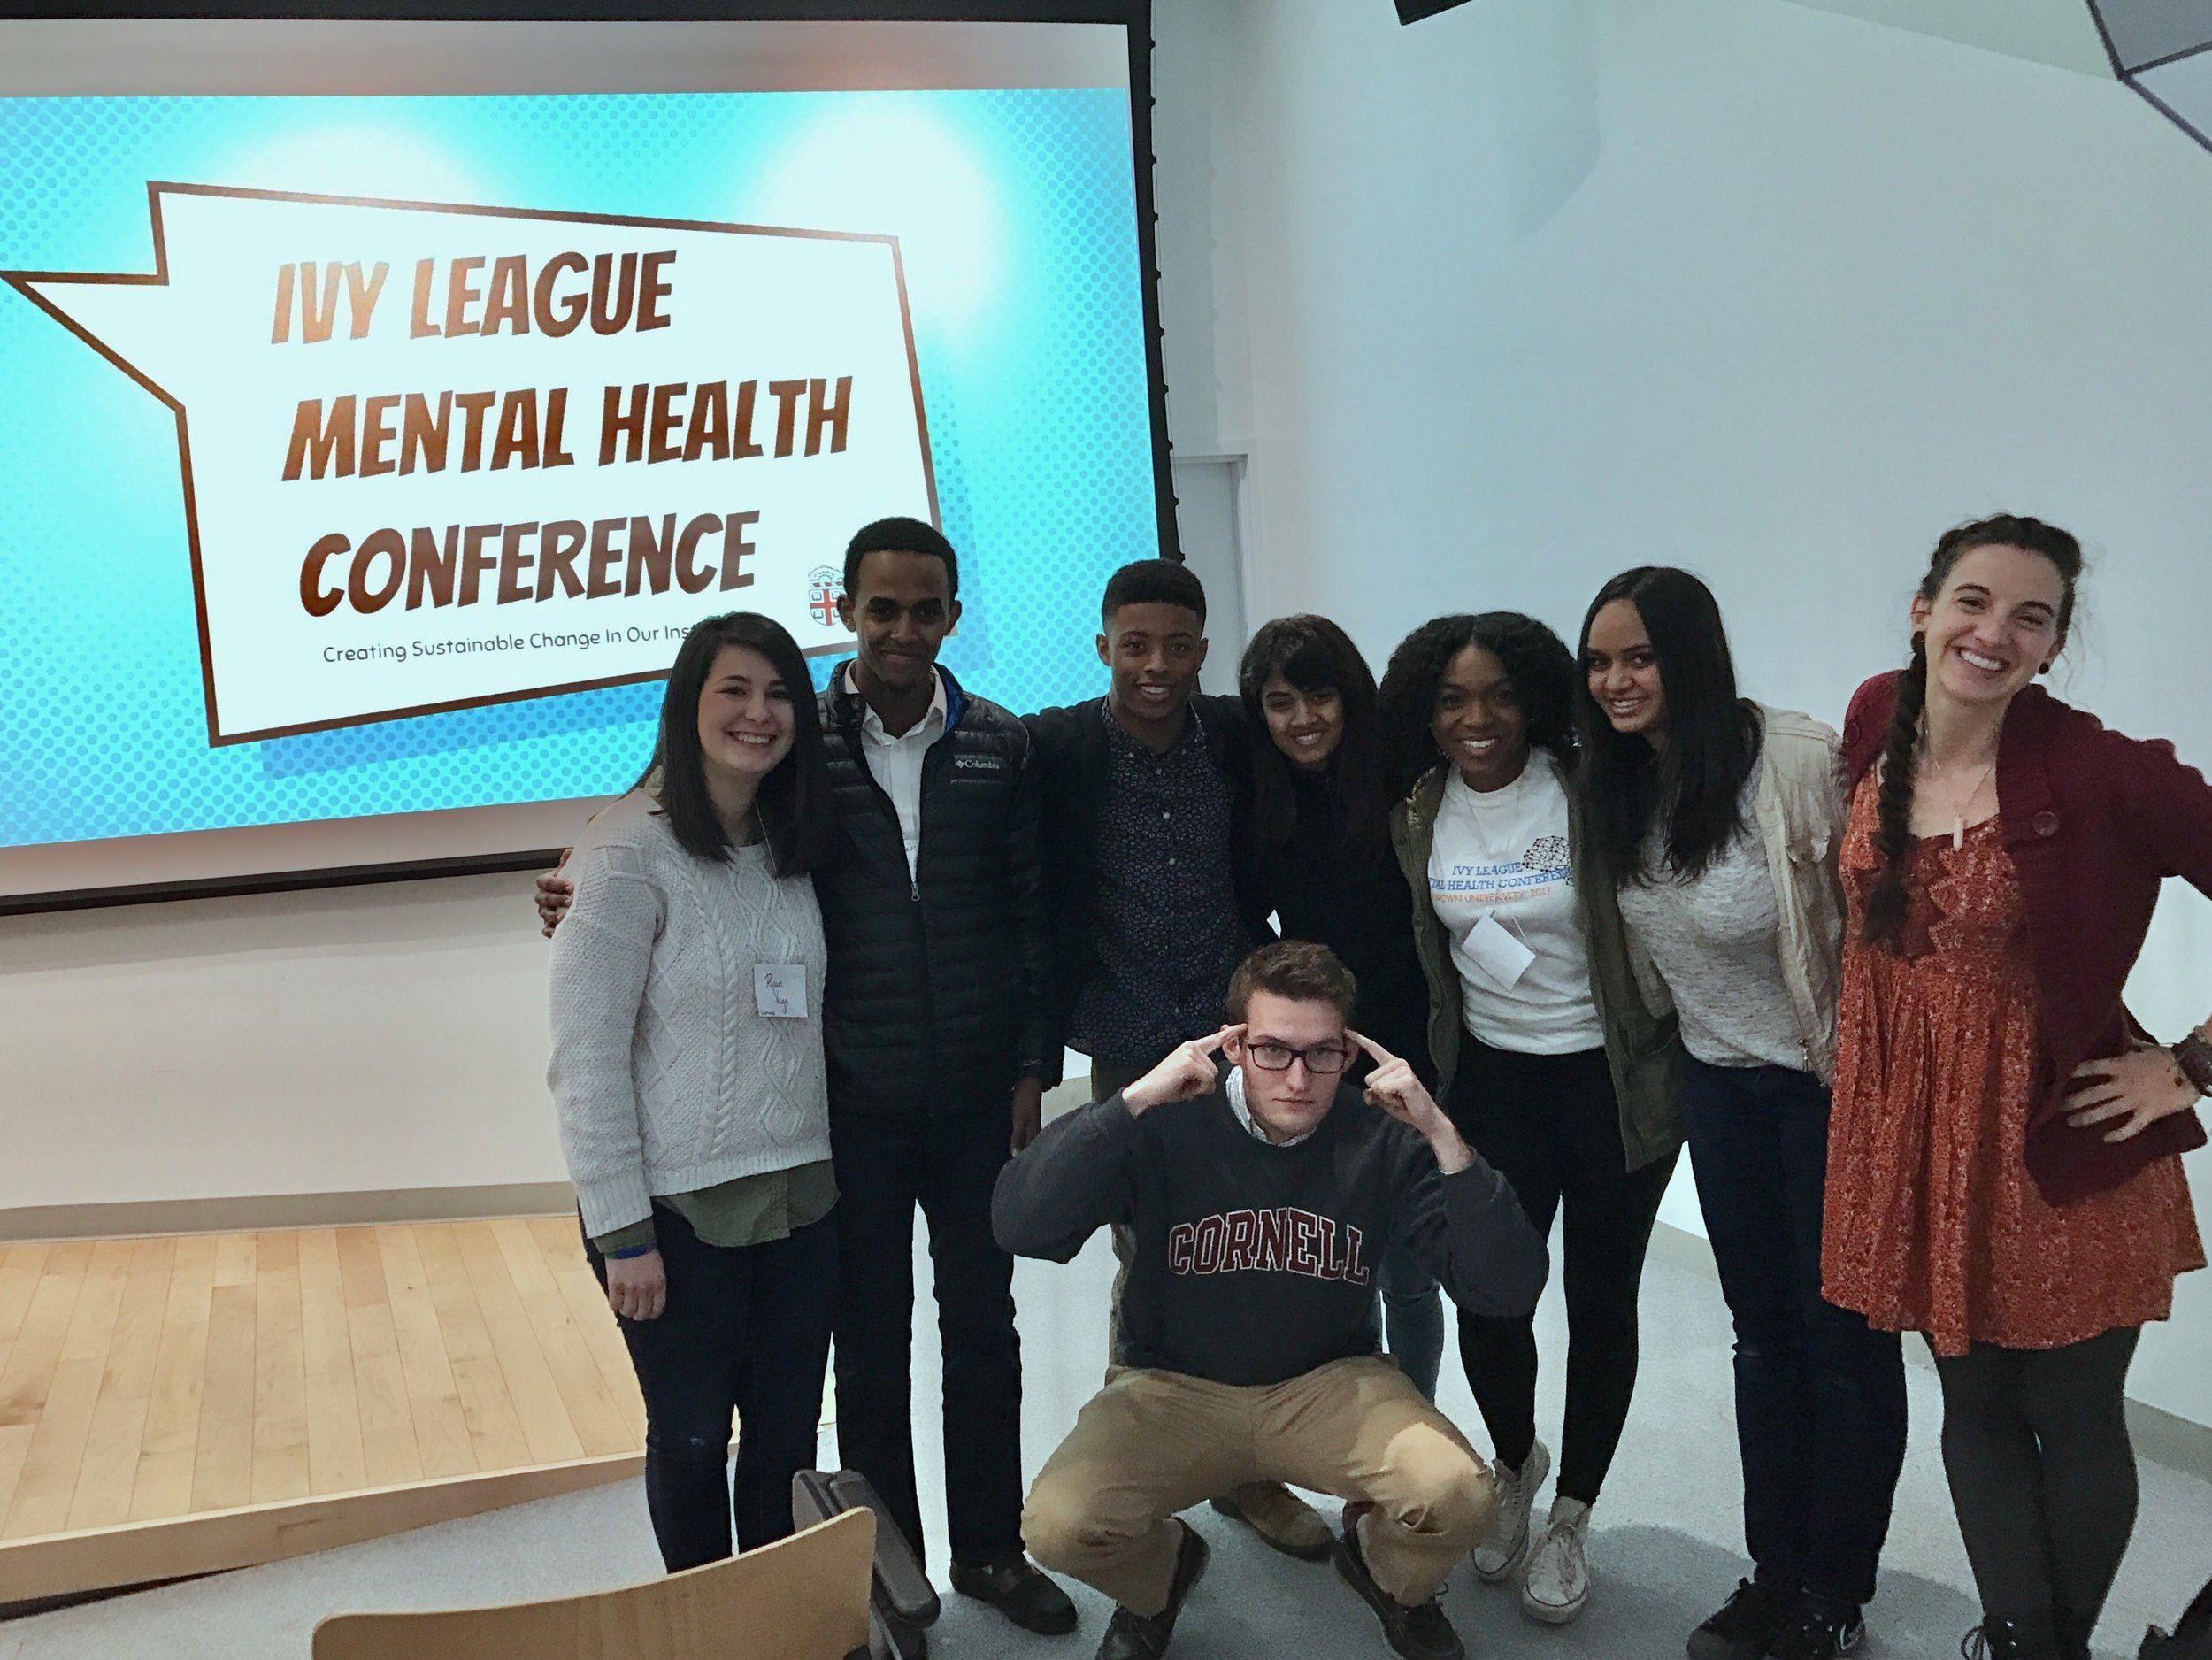 Brandon Adams at the Ivy League Mental Health Conference